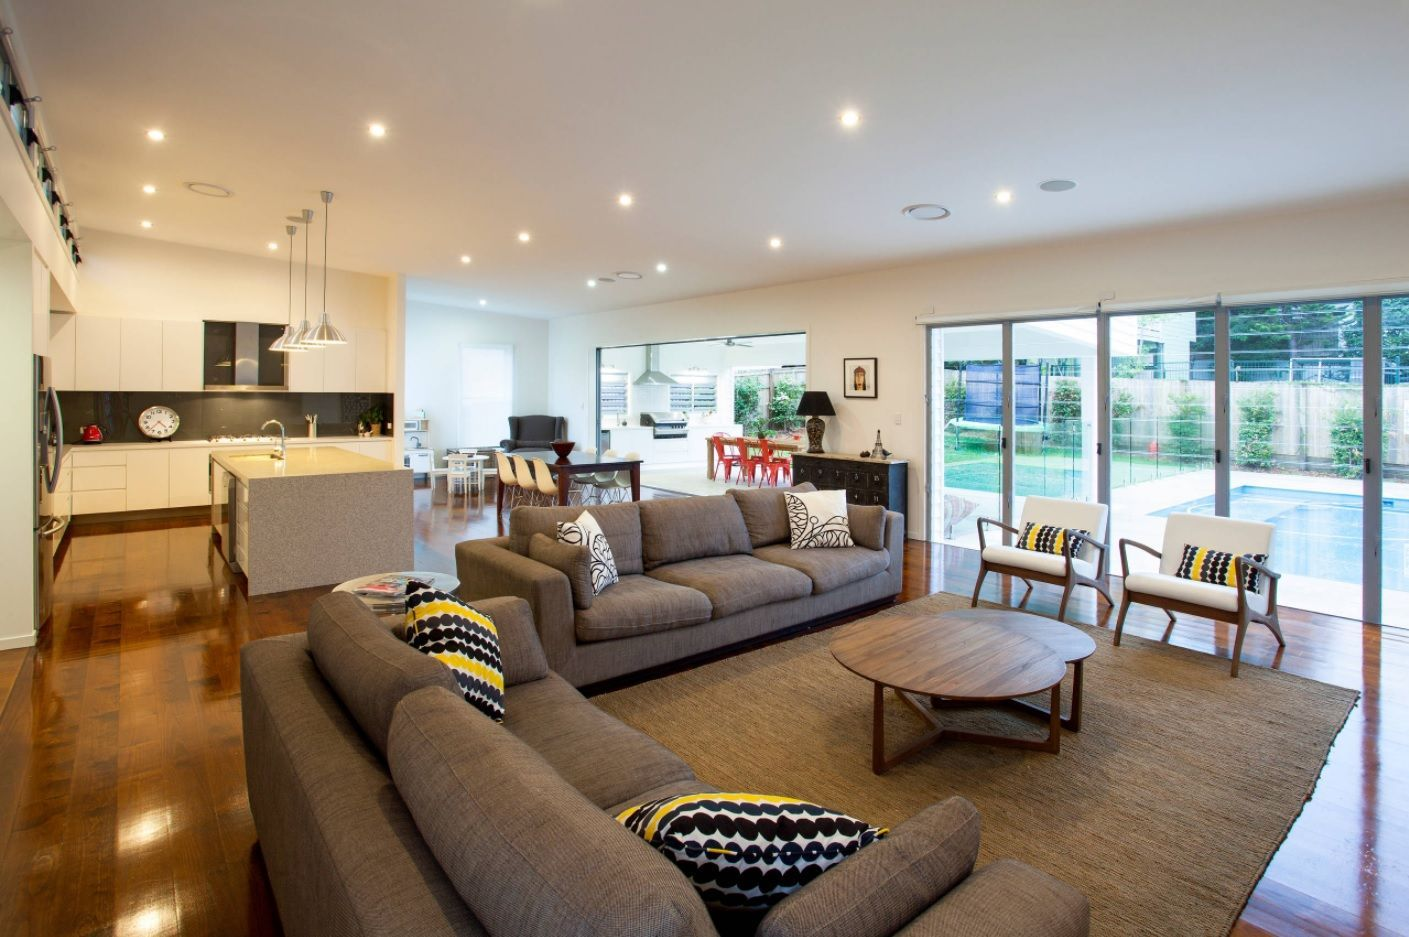 Living Room Layout Design & Decoration Ideas. open common space in the private house with gray upholstered furniture for relaxing zone